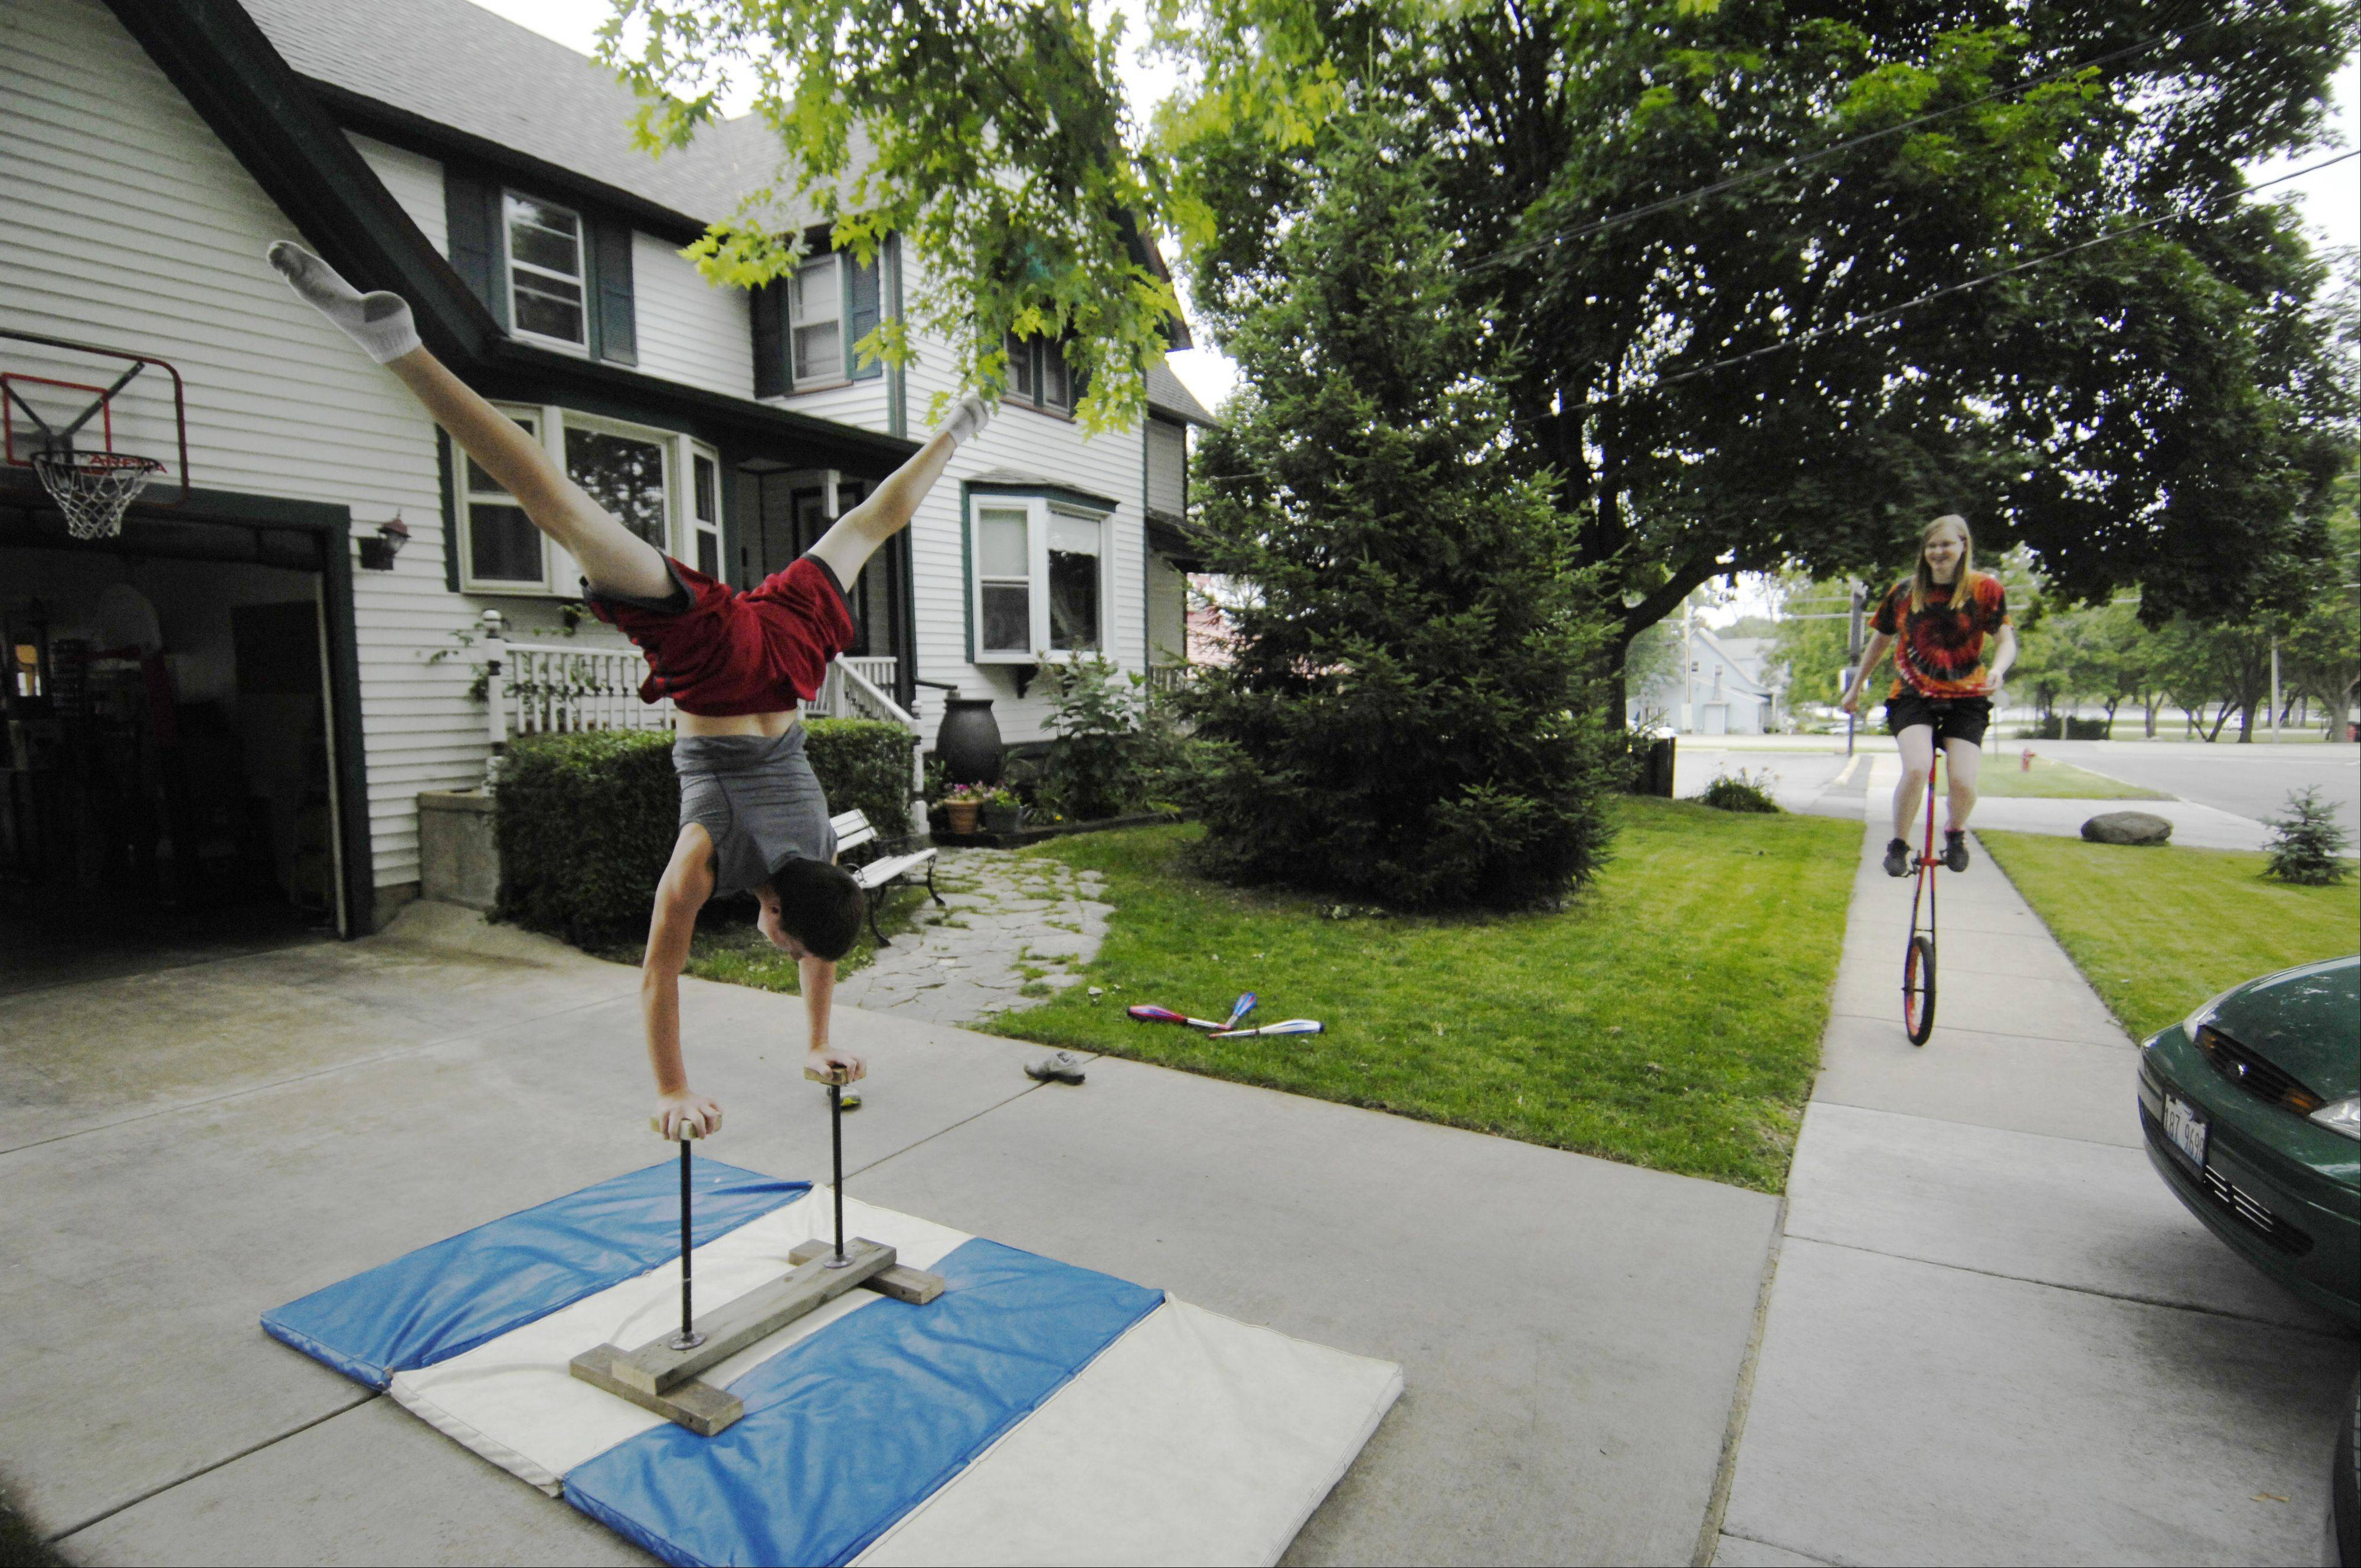 Siblings Katie and Nick Balk use their garage on Prairie Street in South Elgin as their personal circus tent. Nick balances on his homemade balancing canes as Katie, 16, pedals a unicycle in front of their house in South Elgin.